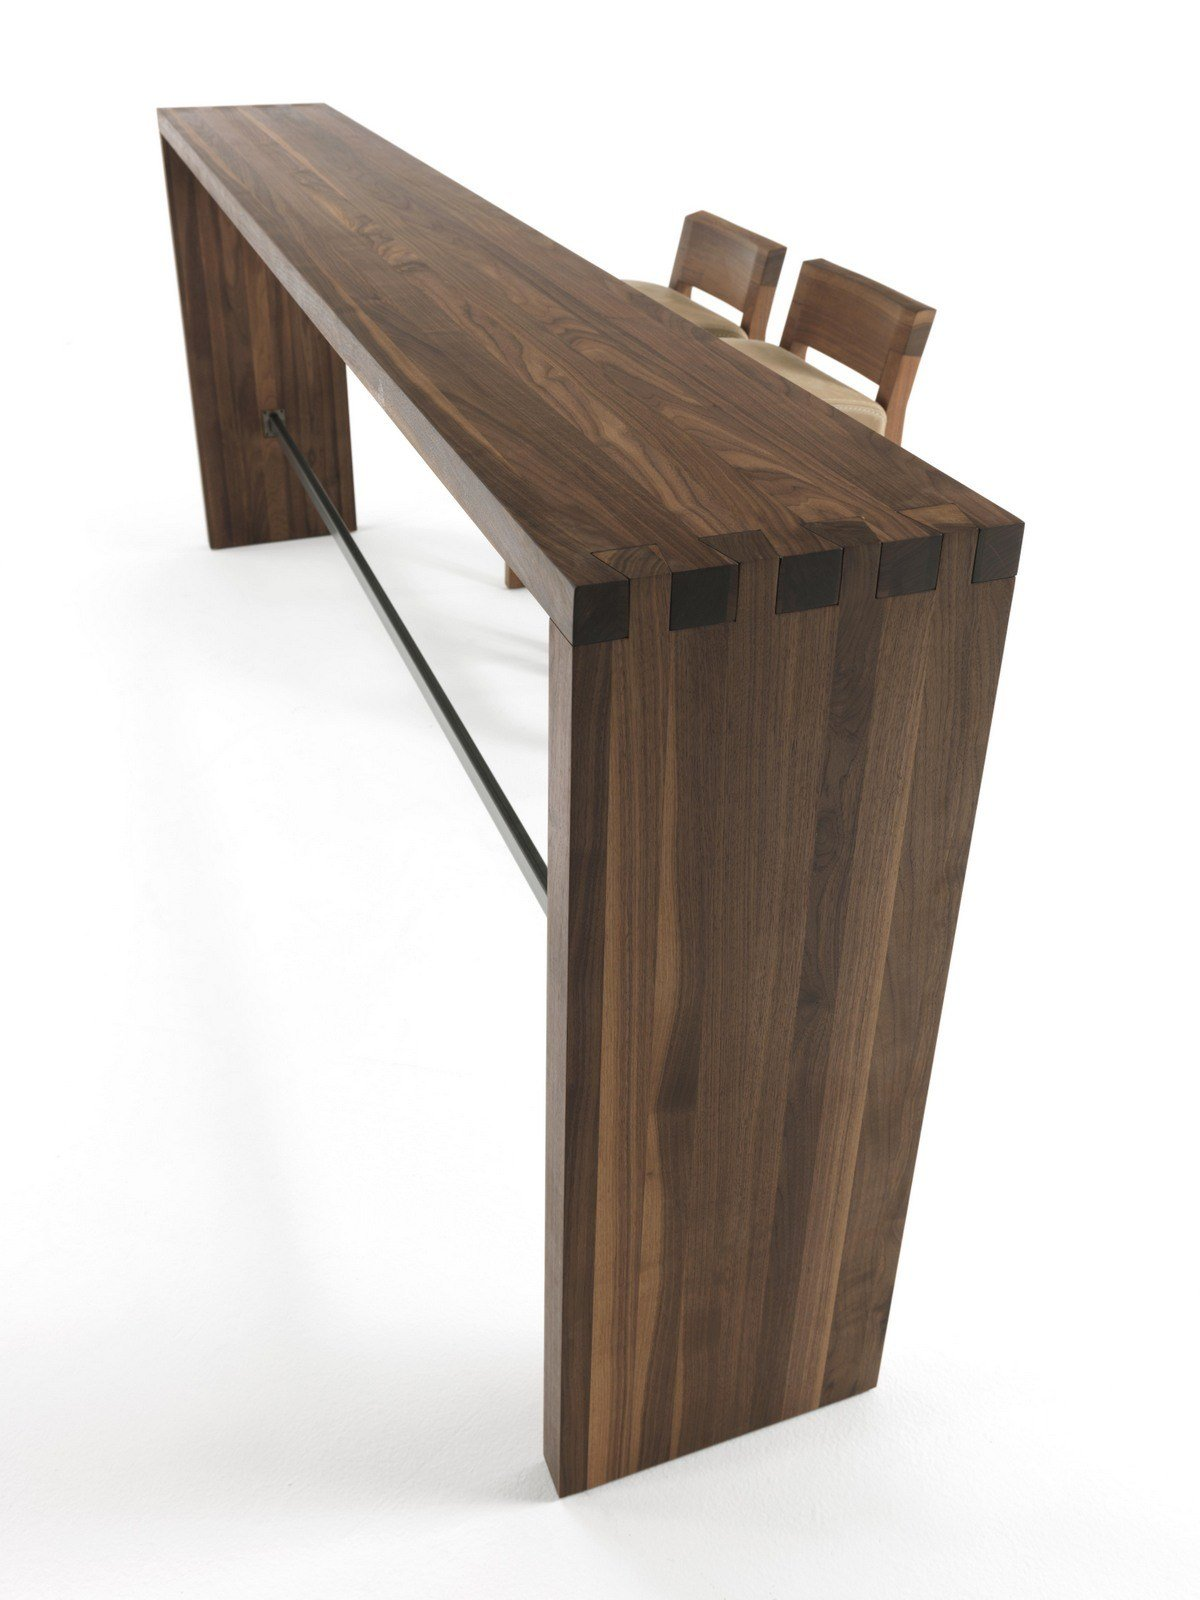 Rectangular solid wood high table CONSOLLE FRAME BAR by